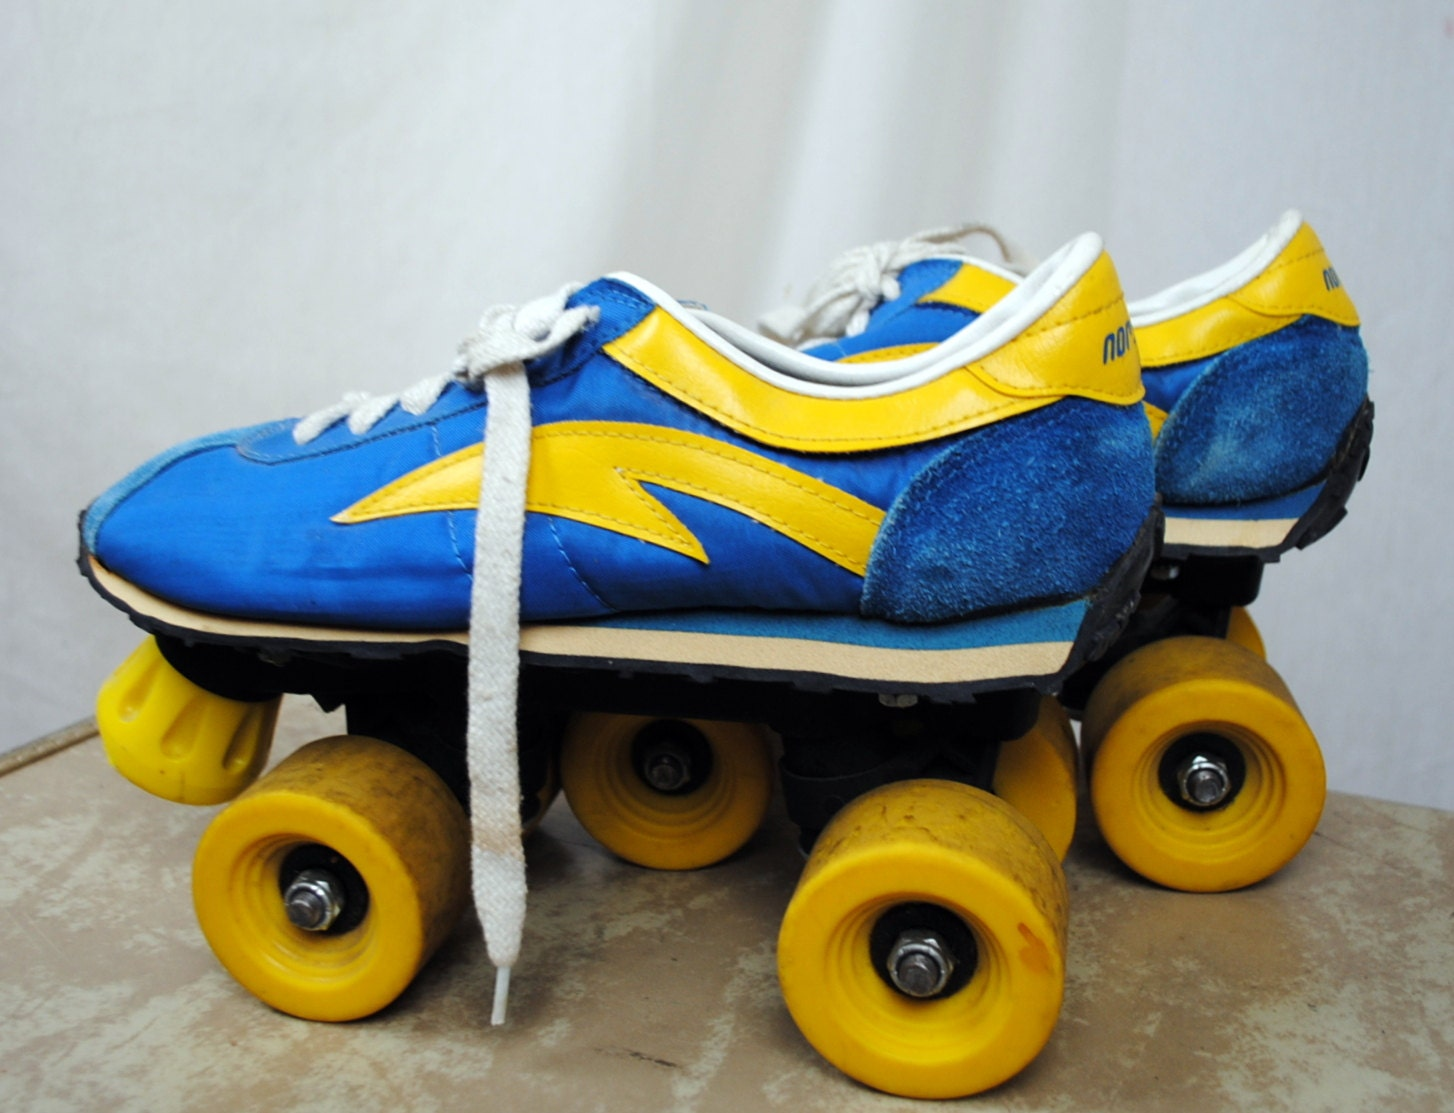 Vintage 70s Roller Skates Norsport Size 8 1/2 by RogueRetro